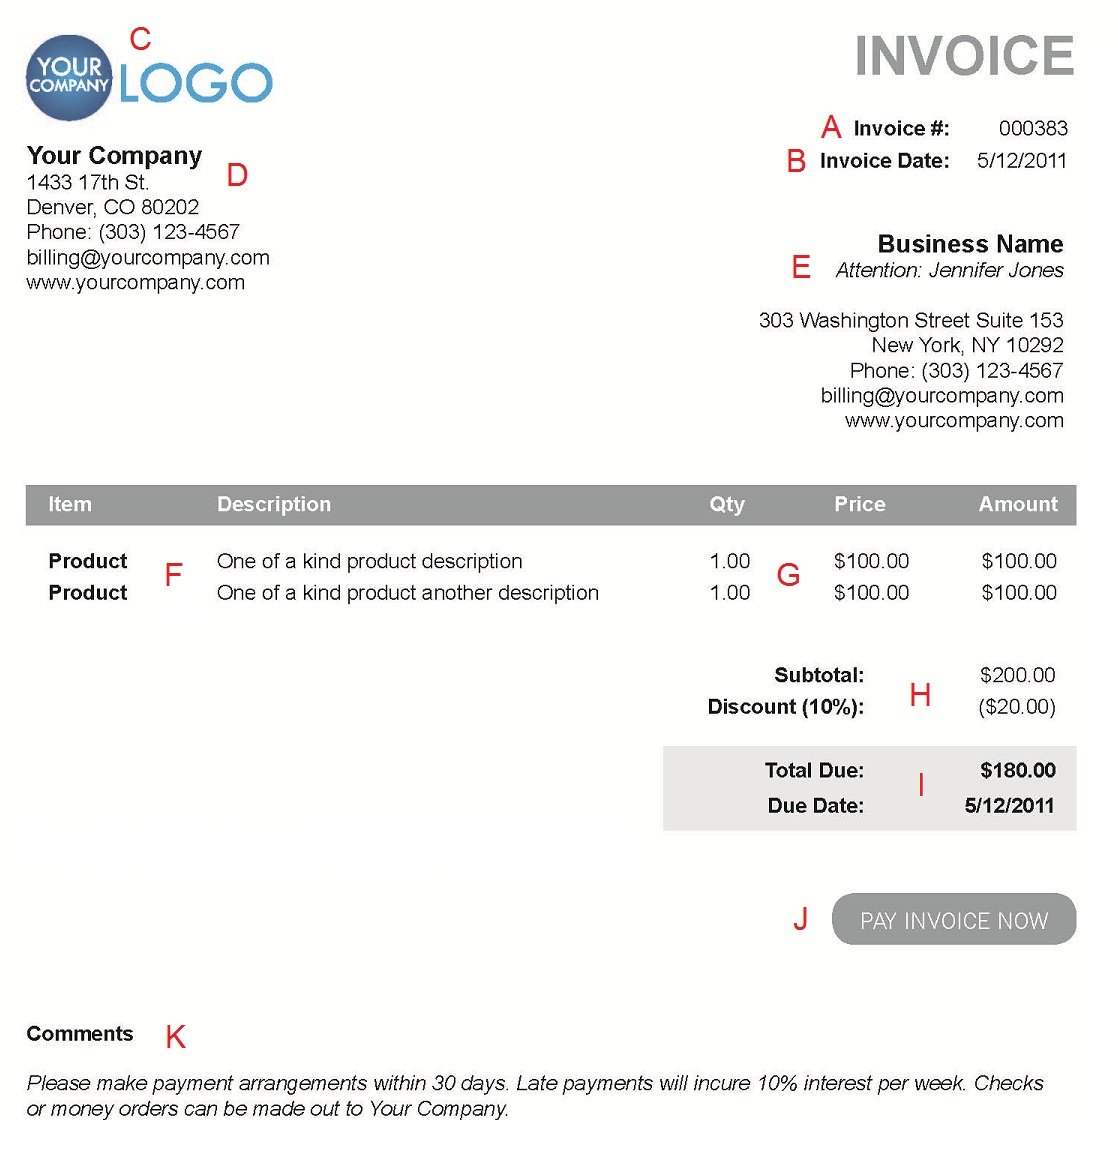 Ultrablogus  Pleasant The  Different Sections Of An Electronic Payment Invoice With Lovely A  With Extraordinary Construction Invoicing Software Also Invoice Design Inspiration In Addition Musician Invoice Template And Invoice Price Mazda  As Well As What Is The Dealer Invoice Additionally Freelancer Invoice Template From Paysimplecom With Ultrablogus  Lovely The  Different Sections Of An Electronic Payment Invoice With Extraordinary A  And Pleasant Construction Invoicing Software Also Invoice Design Inspiration In Addition Musician Invoice Template From Paysimplecom